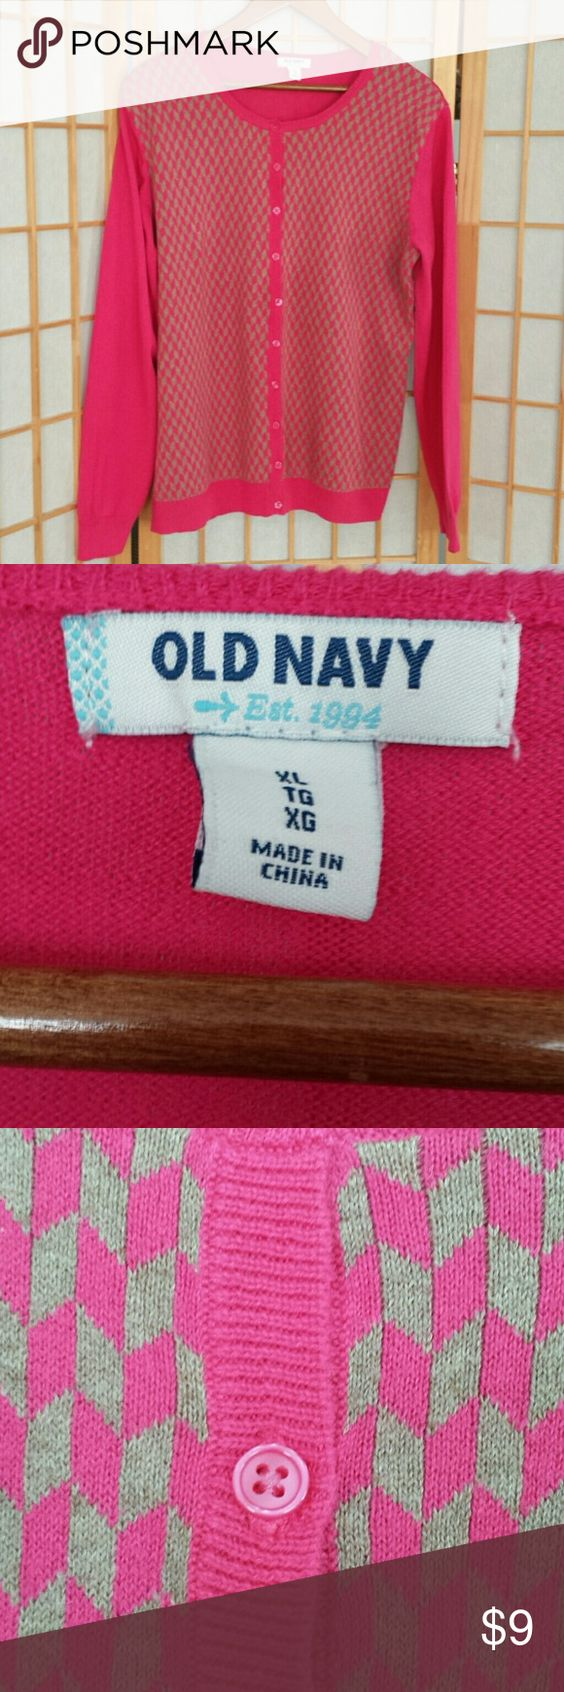 Old Navy  sweater  XL / TG 100 % cotton  Fushia  and tan Old Navy  Sweaters Cardigans